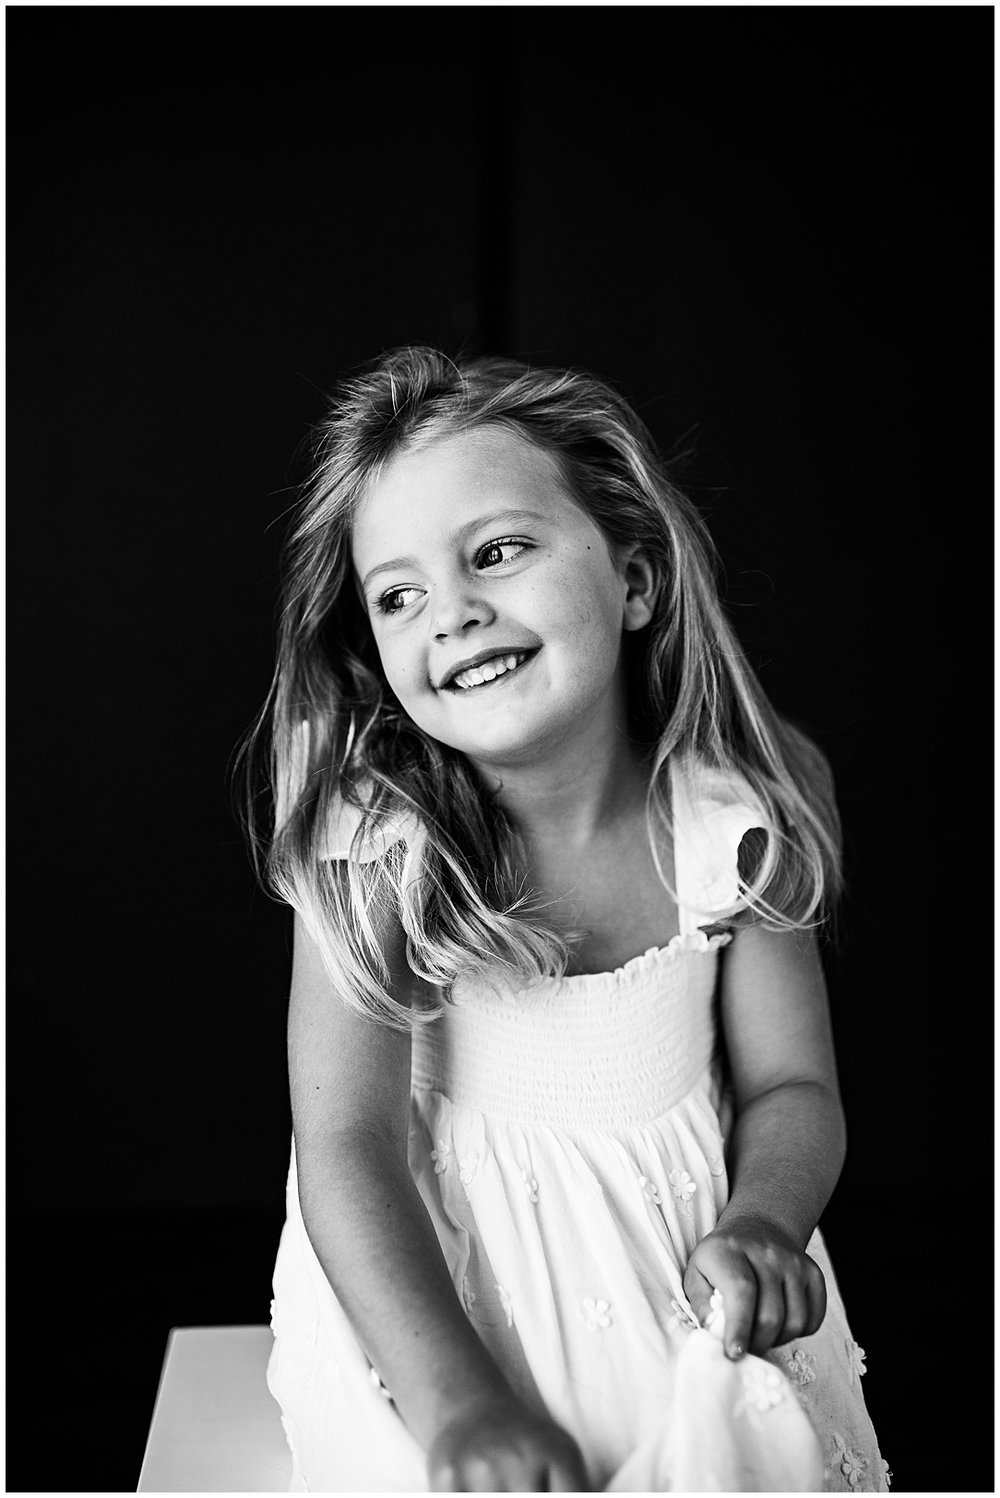 Tessa_marie_photography_atlanta_childrens_fine_art_black_and_white_photography_family_photographer_0033.jpg